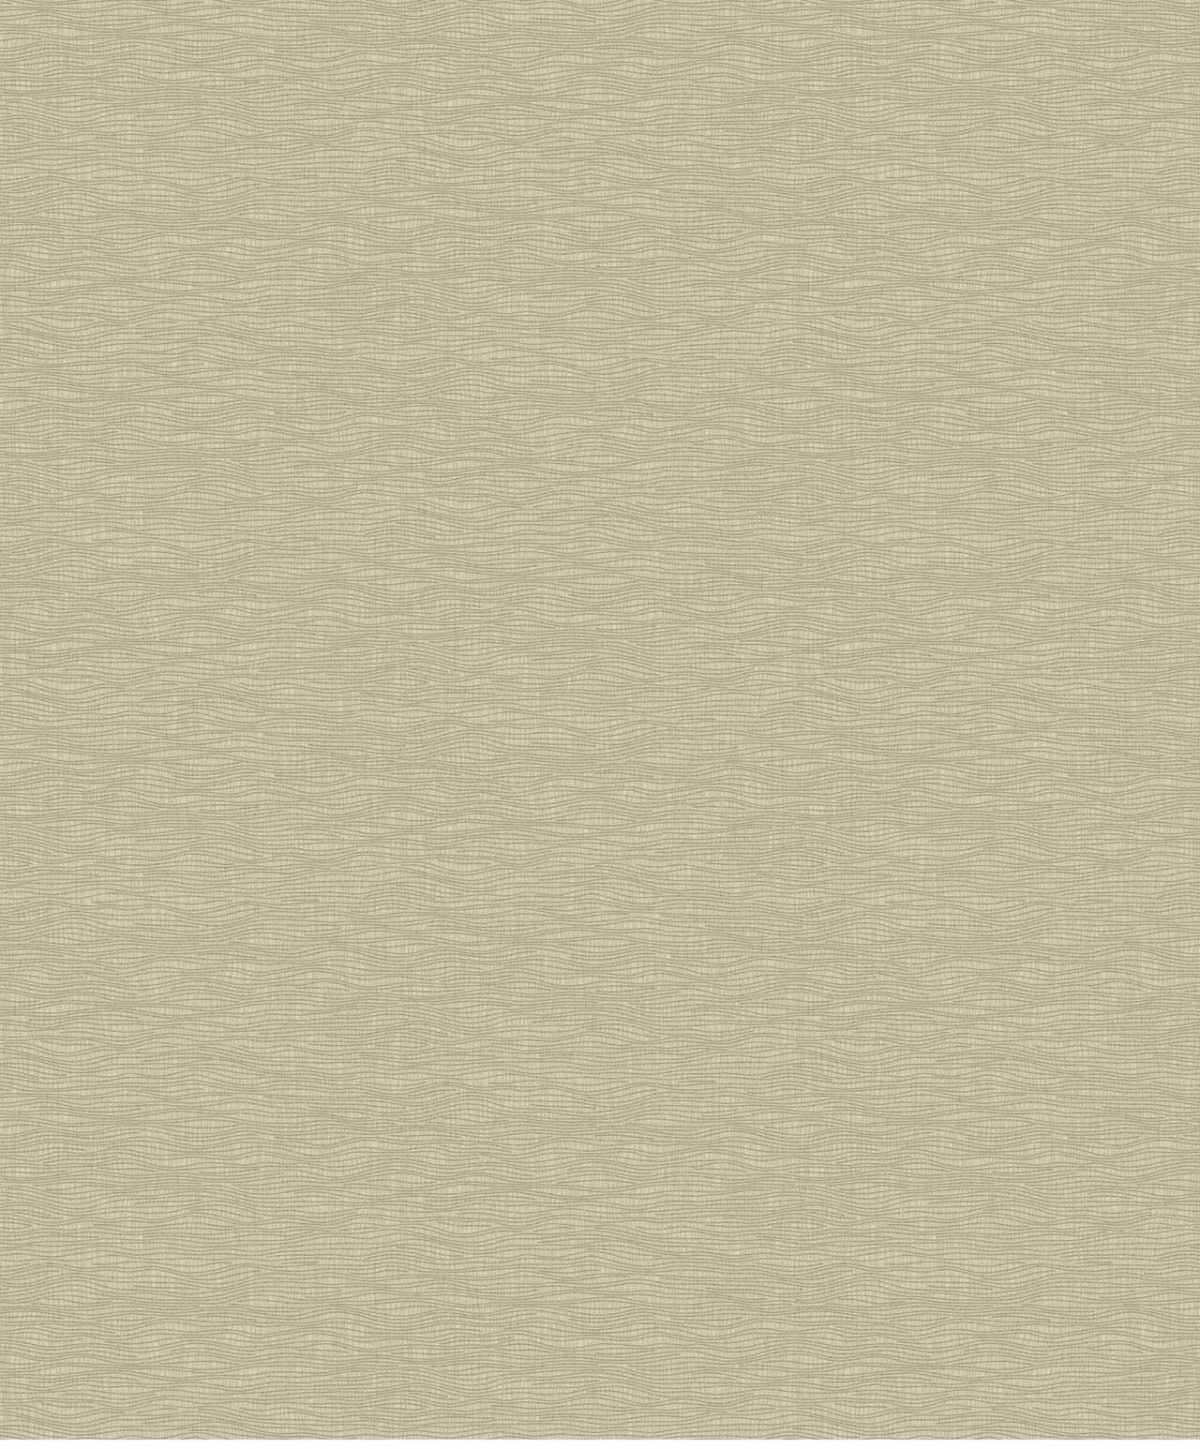 Capri-Luxury-Wallpaper-CP00729-SMALL-STRING